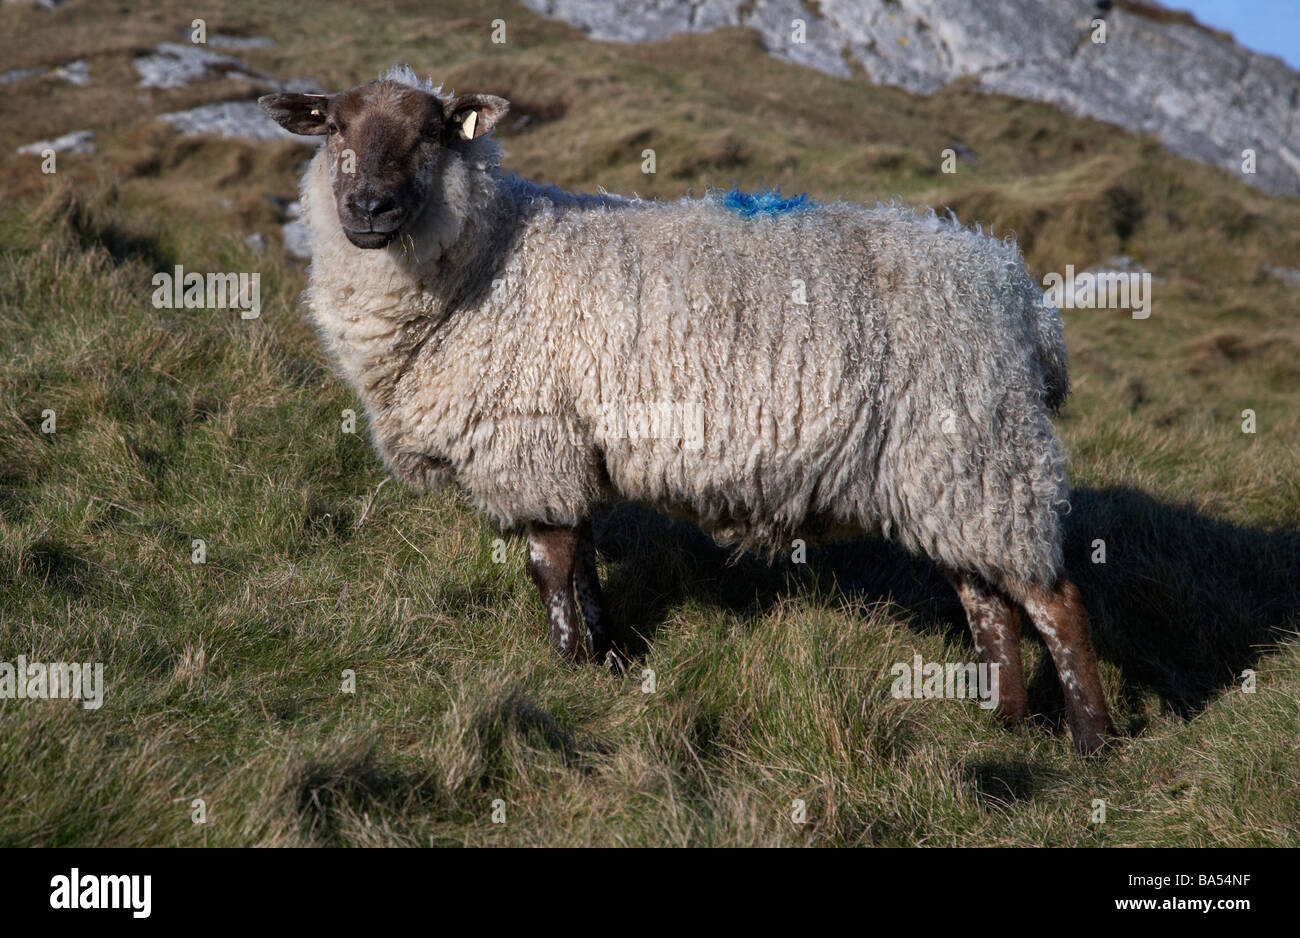 single black faced sheep looking to camera eye contact eating grass on rough ground inishowen peninsula county donegal - Stock Image